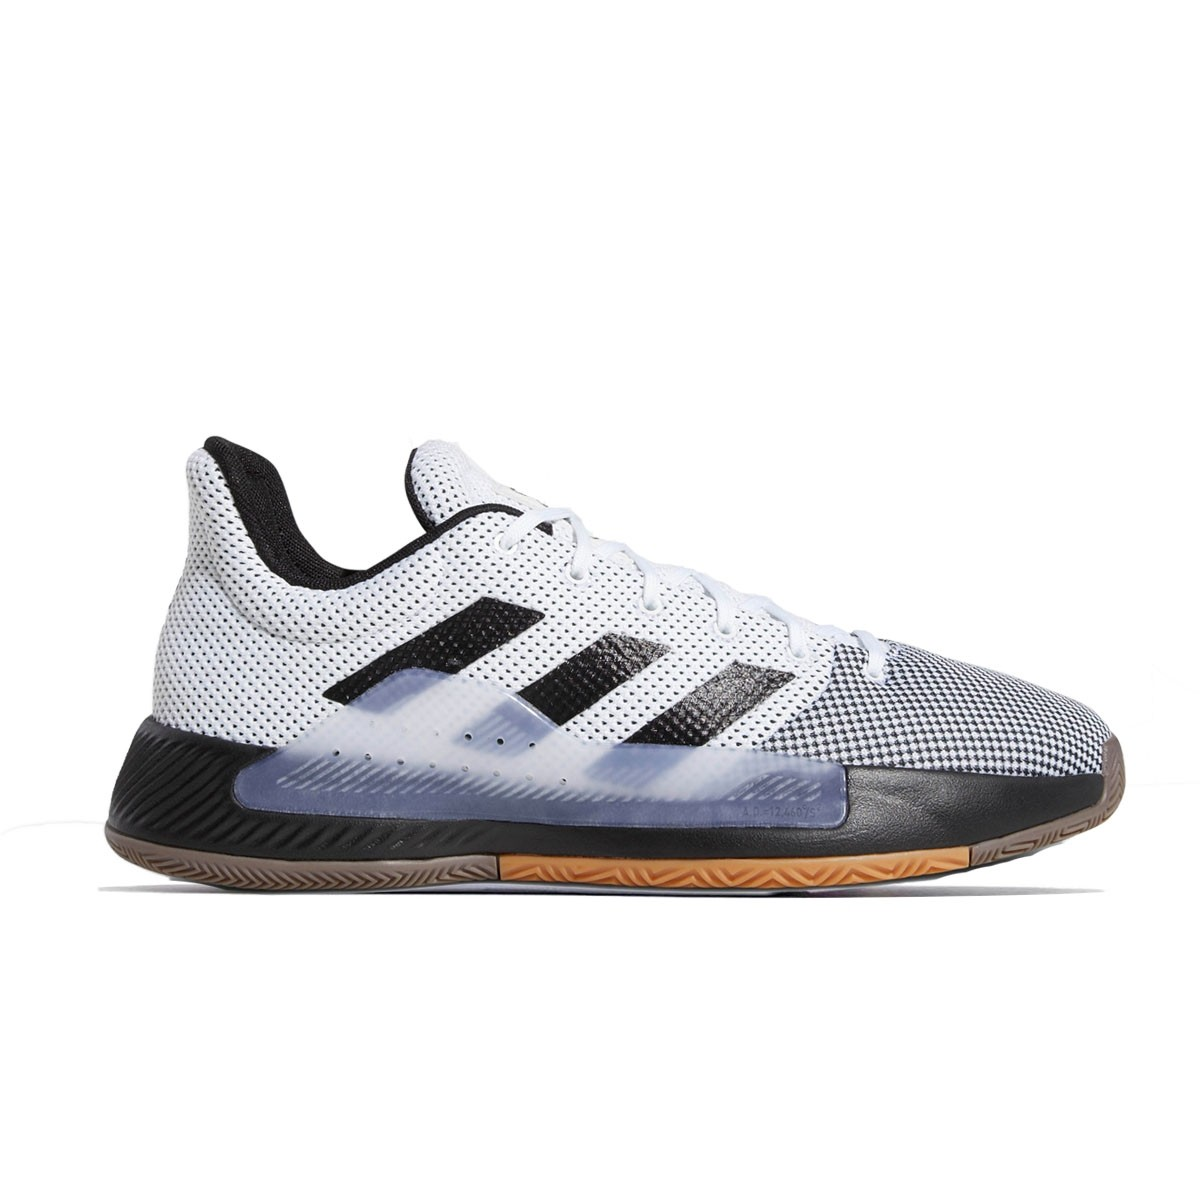 ADIDAS Pro Bounce Madness Low 'B&W'